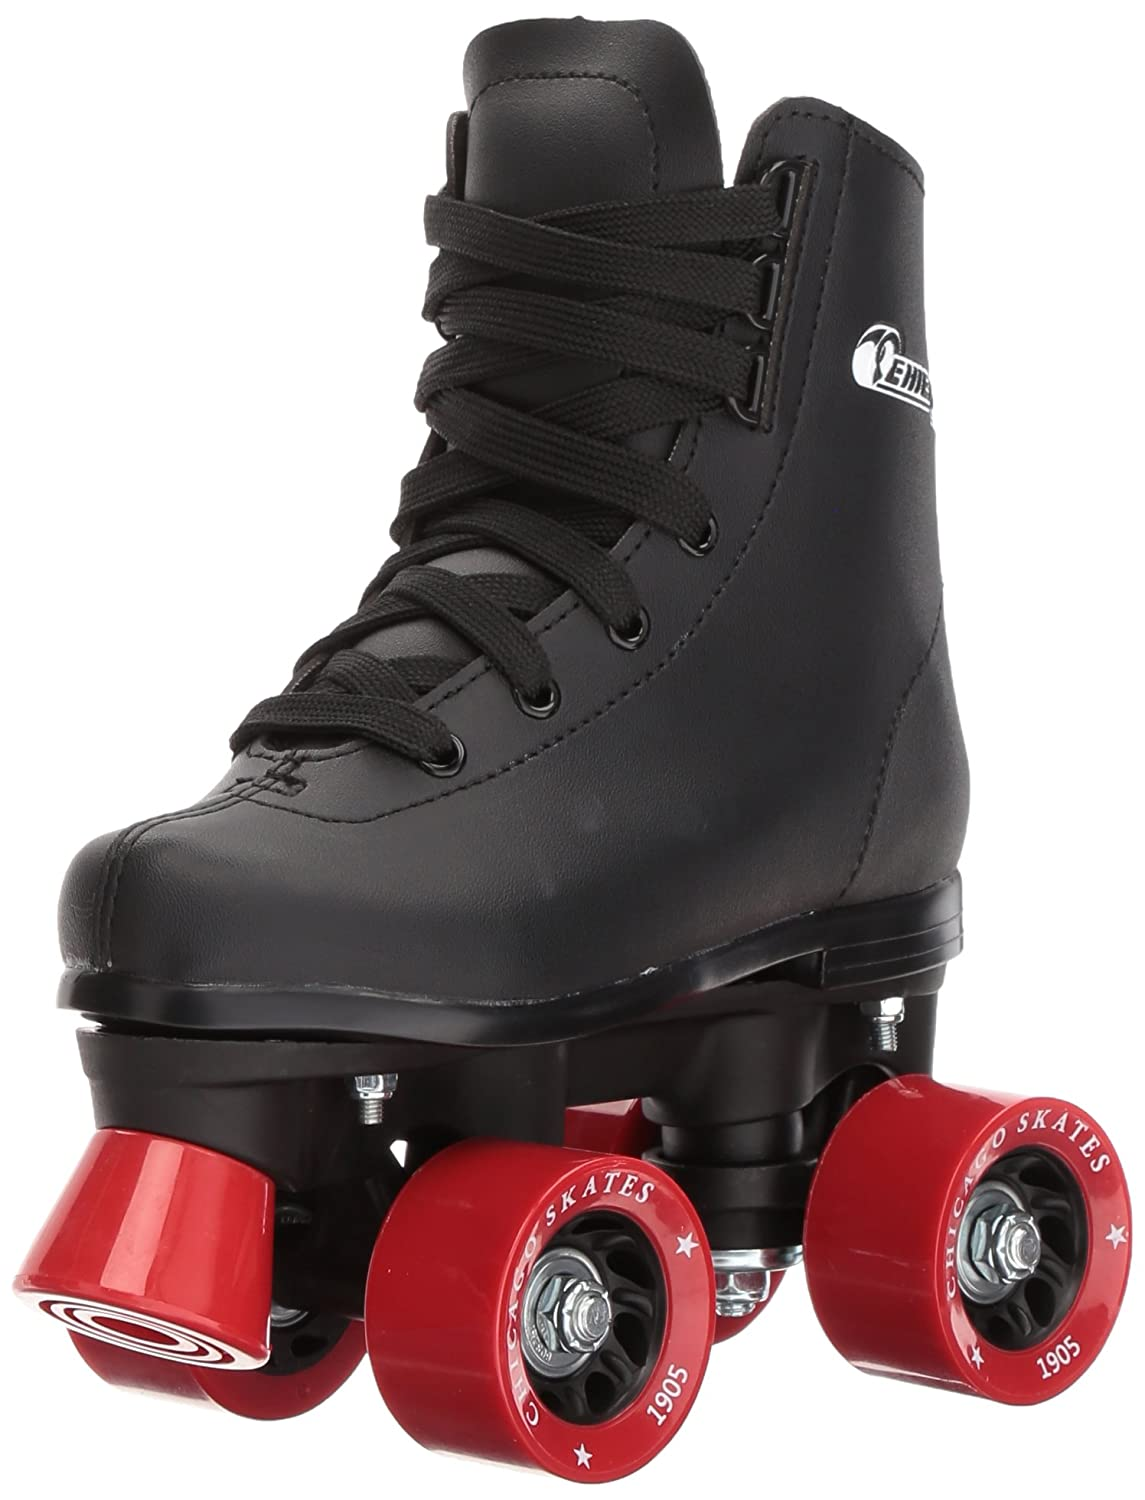 Chicago Boys Rink Roller Skate – Black Youth Quad Skates